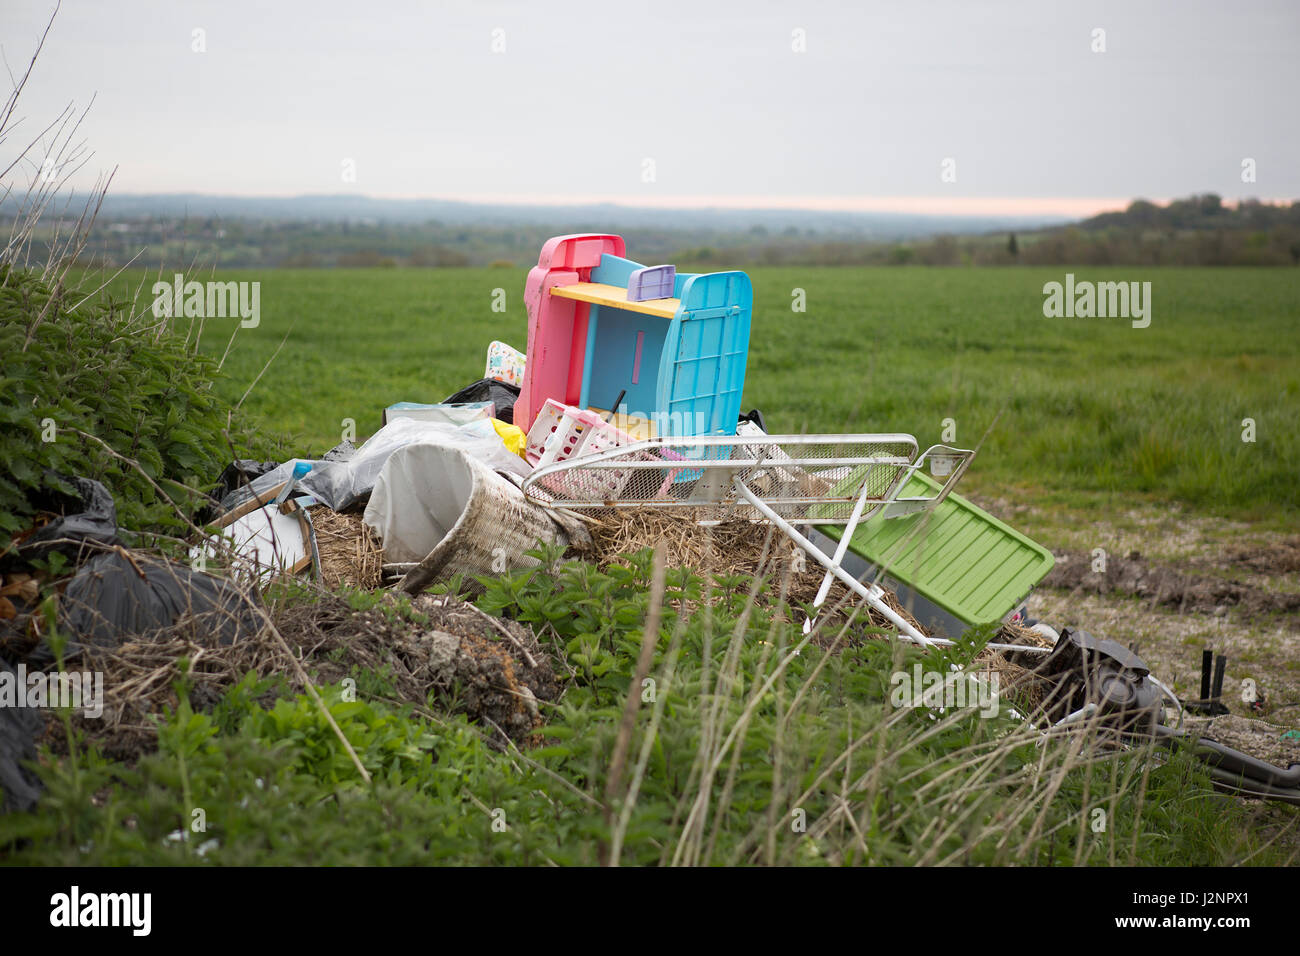 Waste dumped in the countryside in the countryside, an illegal social issue, fly tipping causing environmental pollution - Stock Image